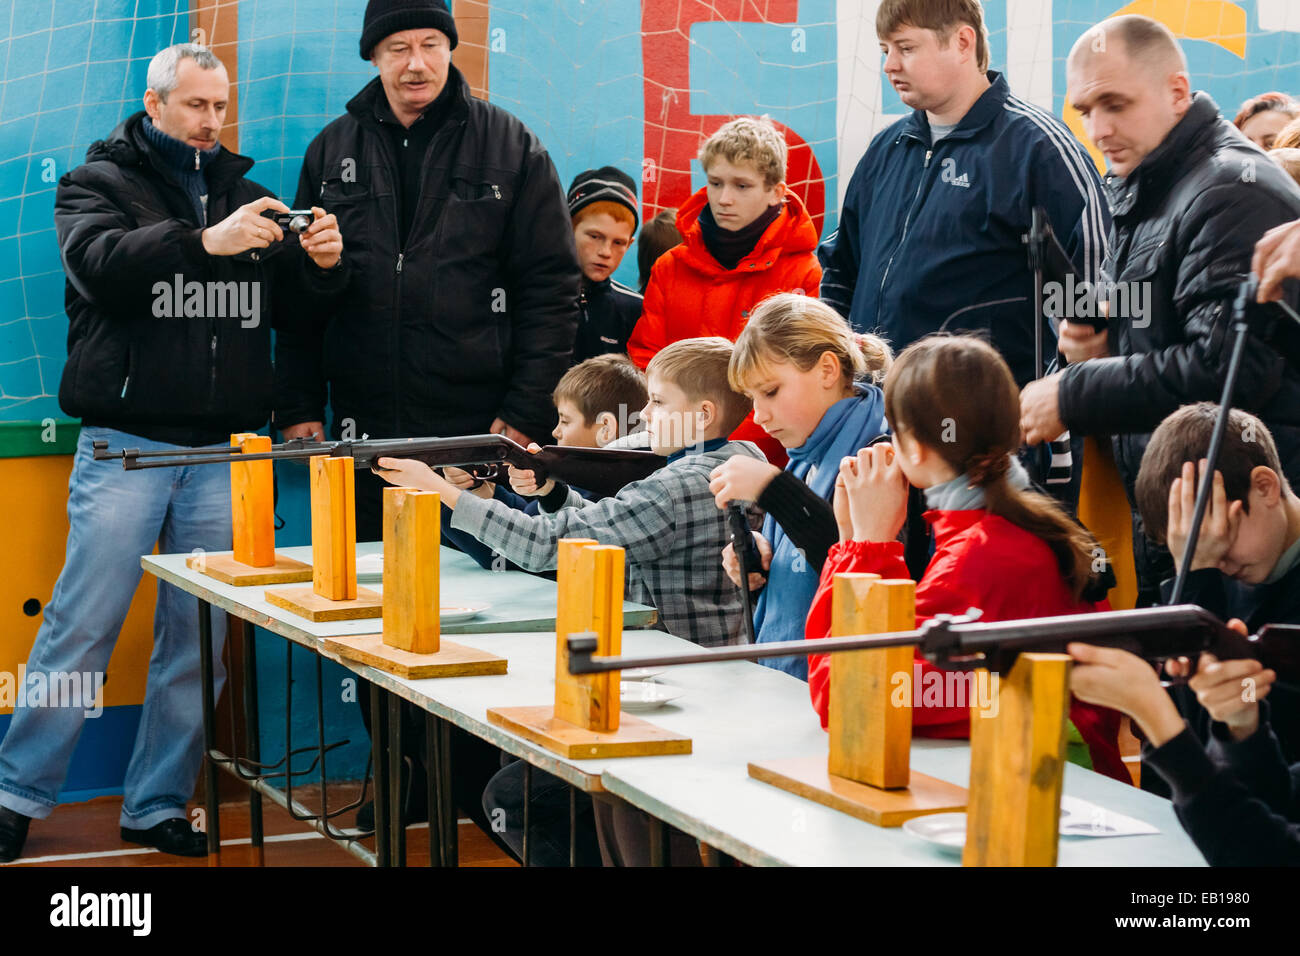 GOMEL, BELARUS - JANUARY 1, 2011: Unrecognizable Belarusian secondary school pupils girls shooting an air rifle - Stock Image